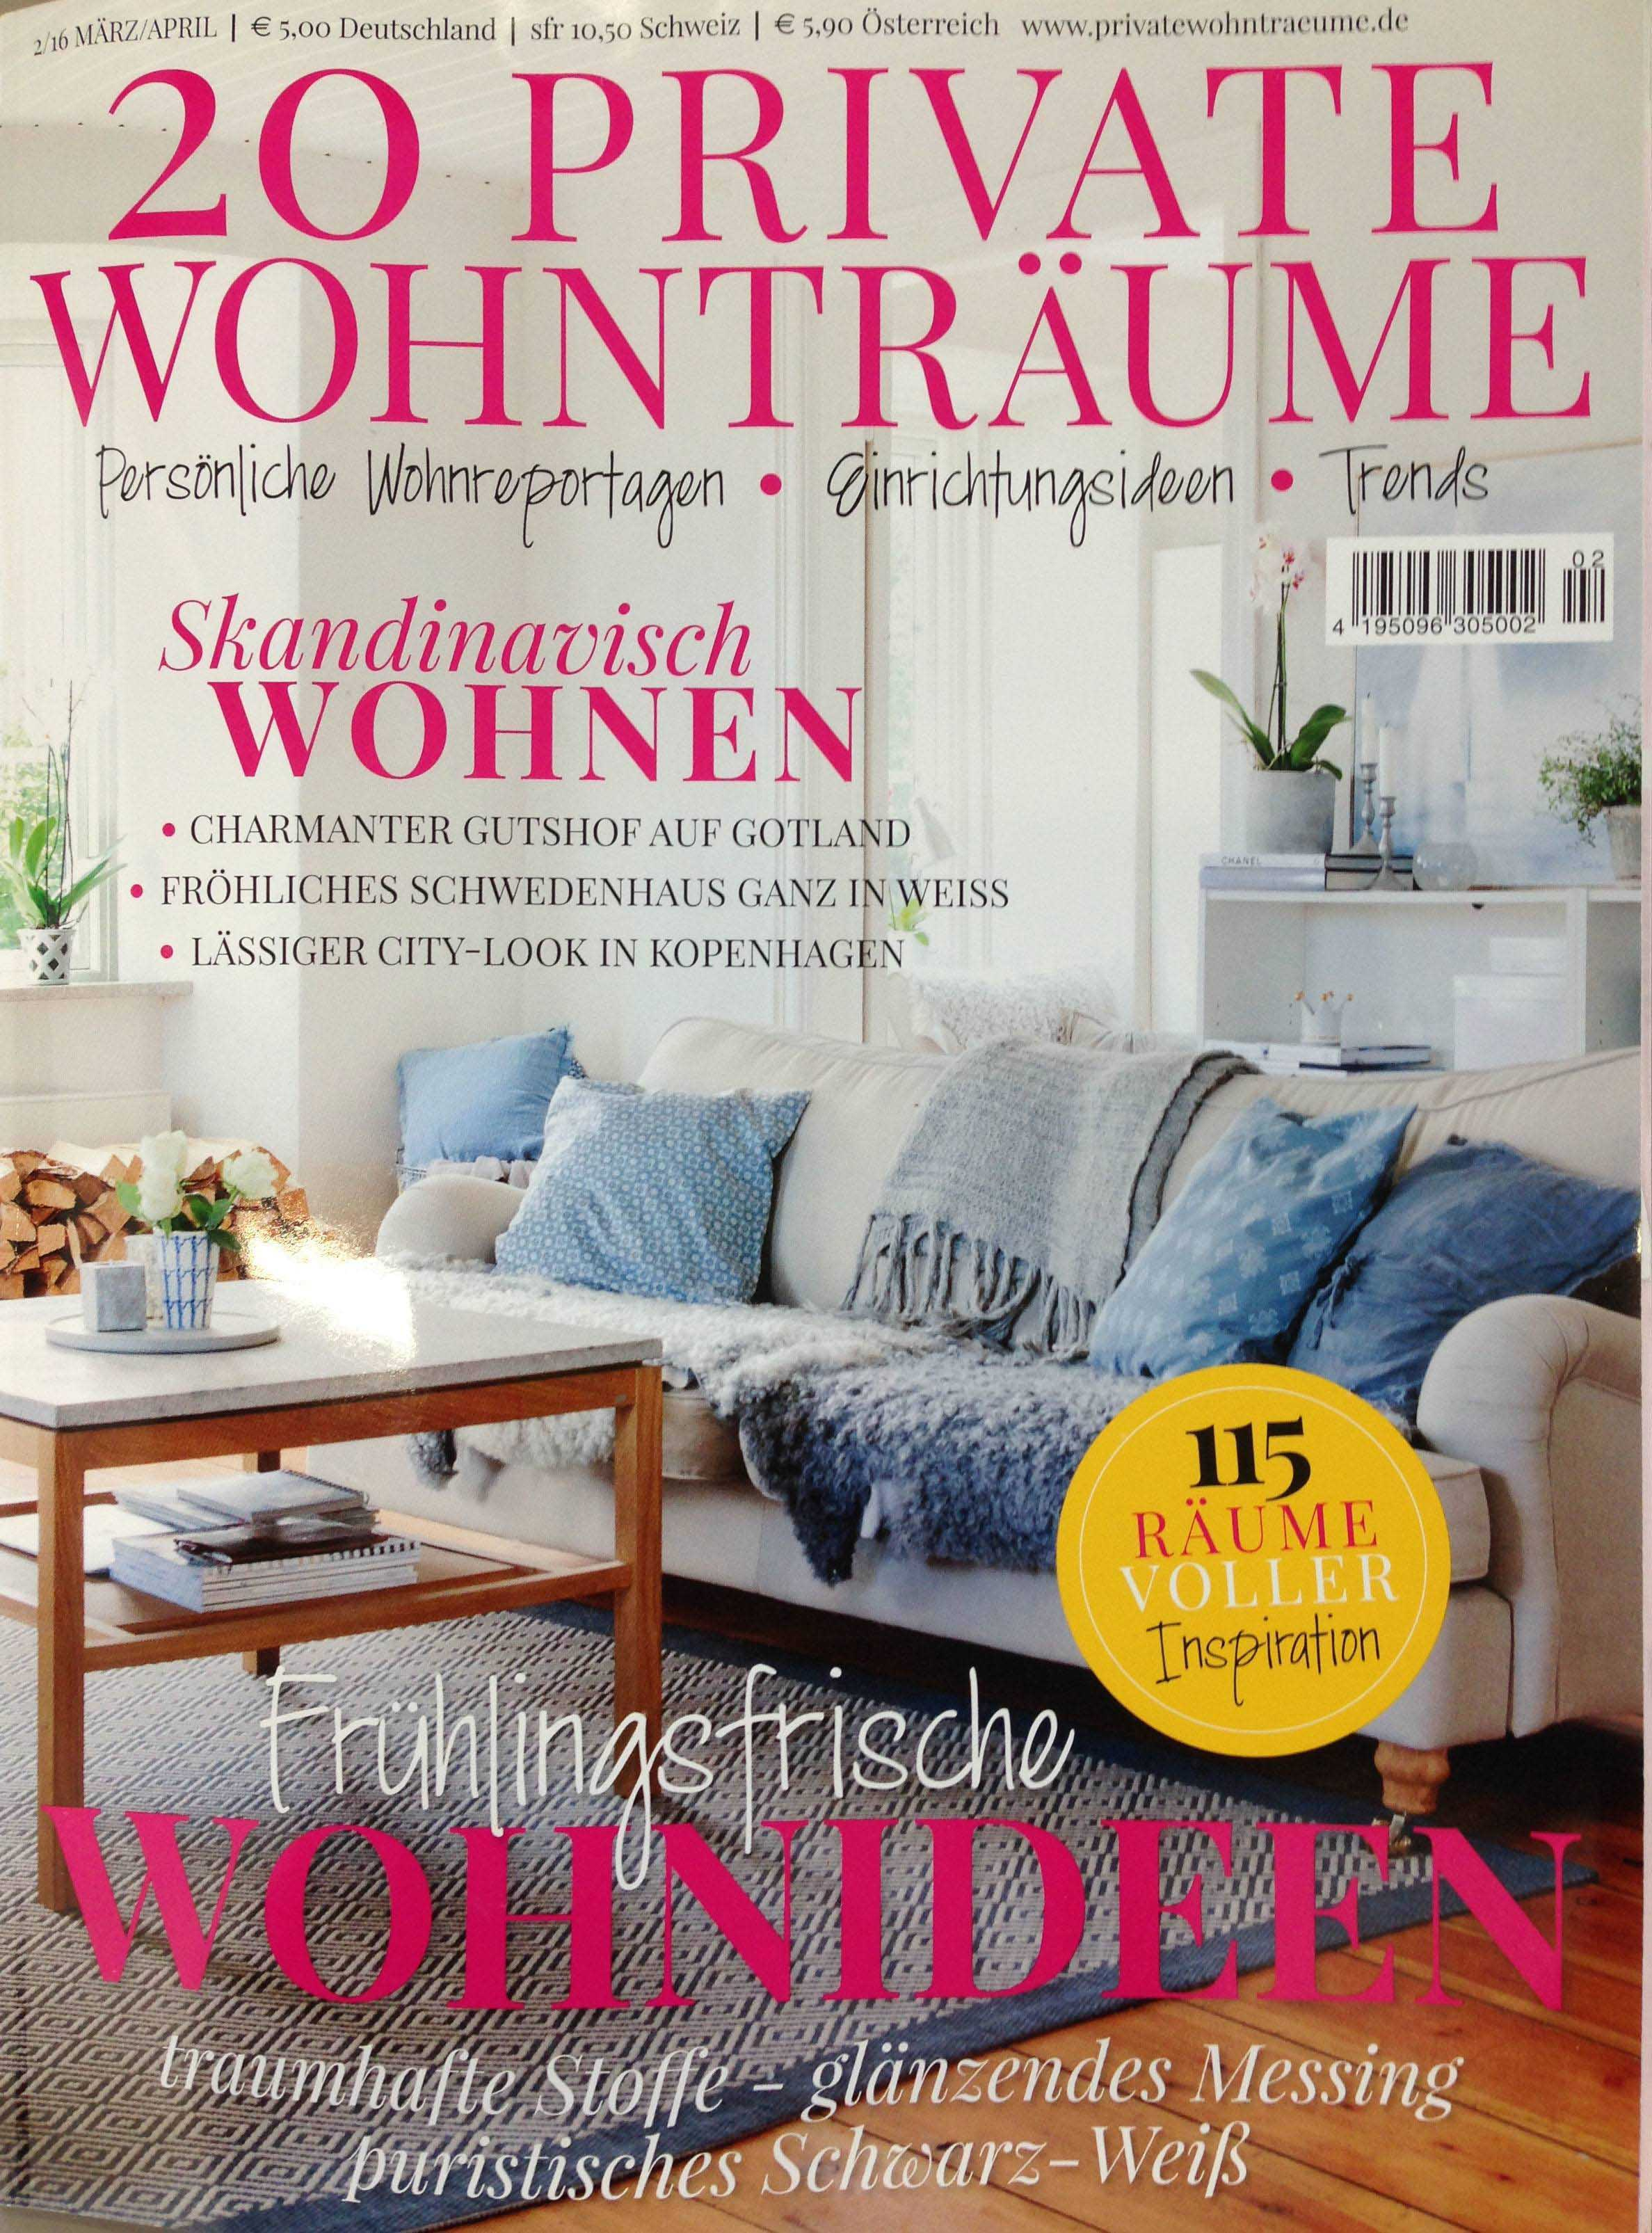 20 Private Wohntraume cover.JPG